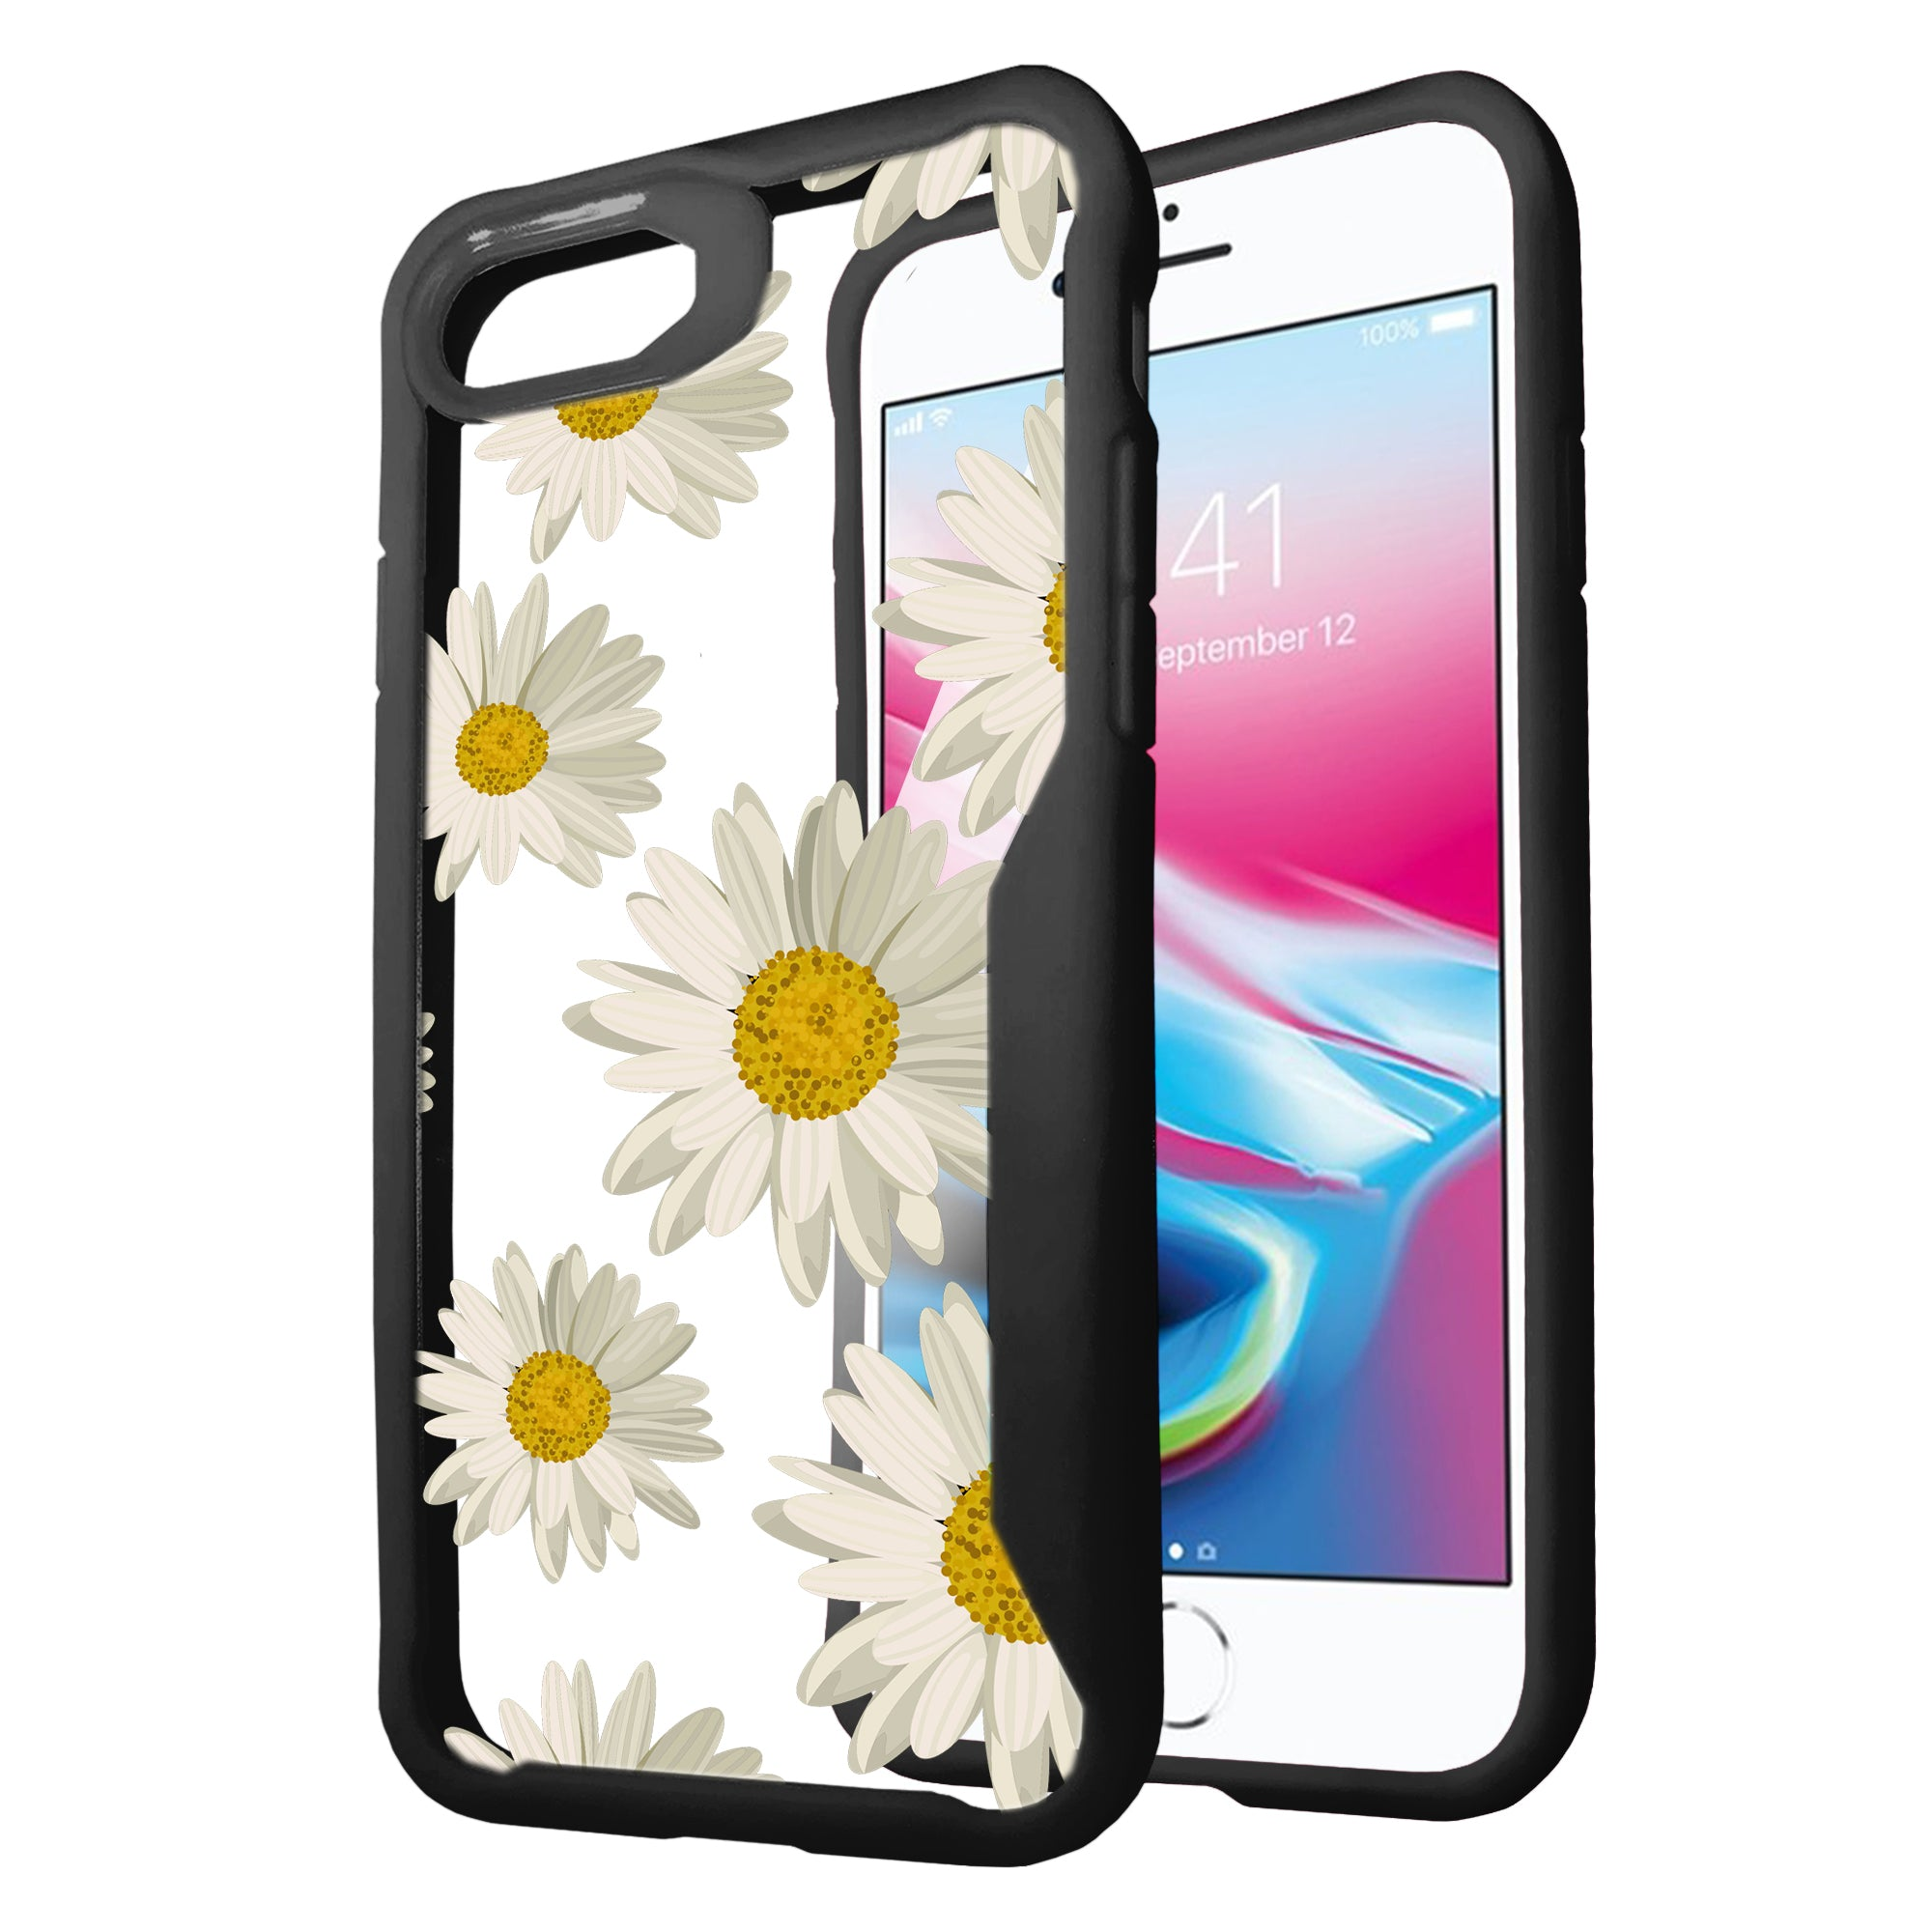 For-Apple-iPhone-7-iPhone-8-Clear-Case-w-Black-Silicone-Edges-Floral-Design thumbnail 11